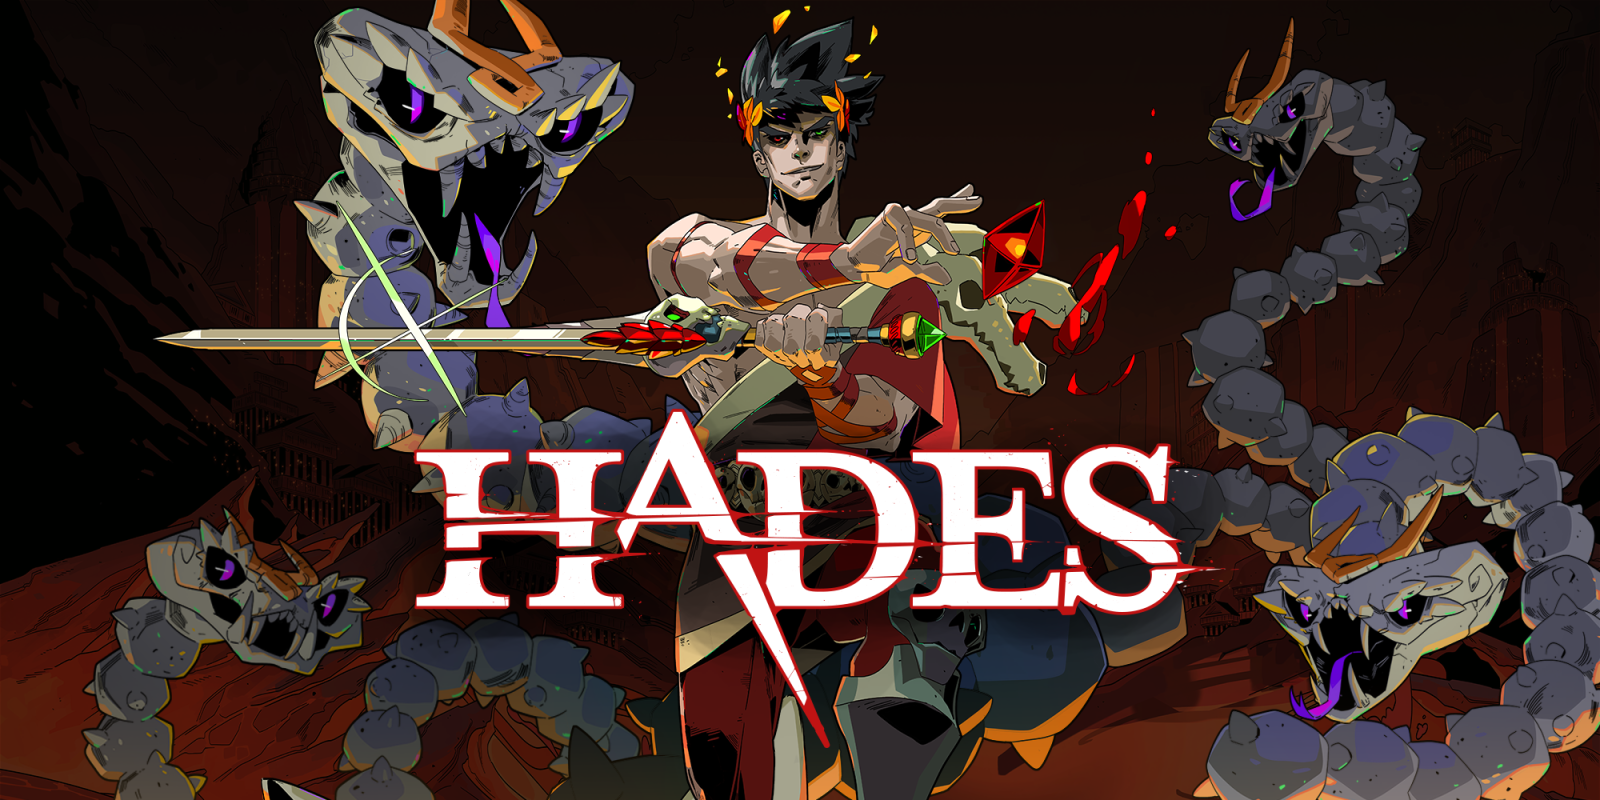 H2x1_NSwitchDS_Hades_image1600w.png